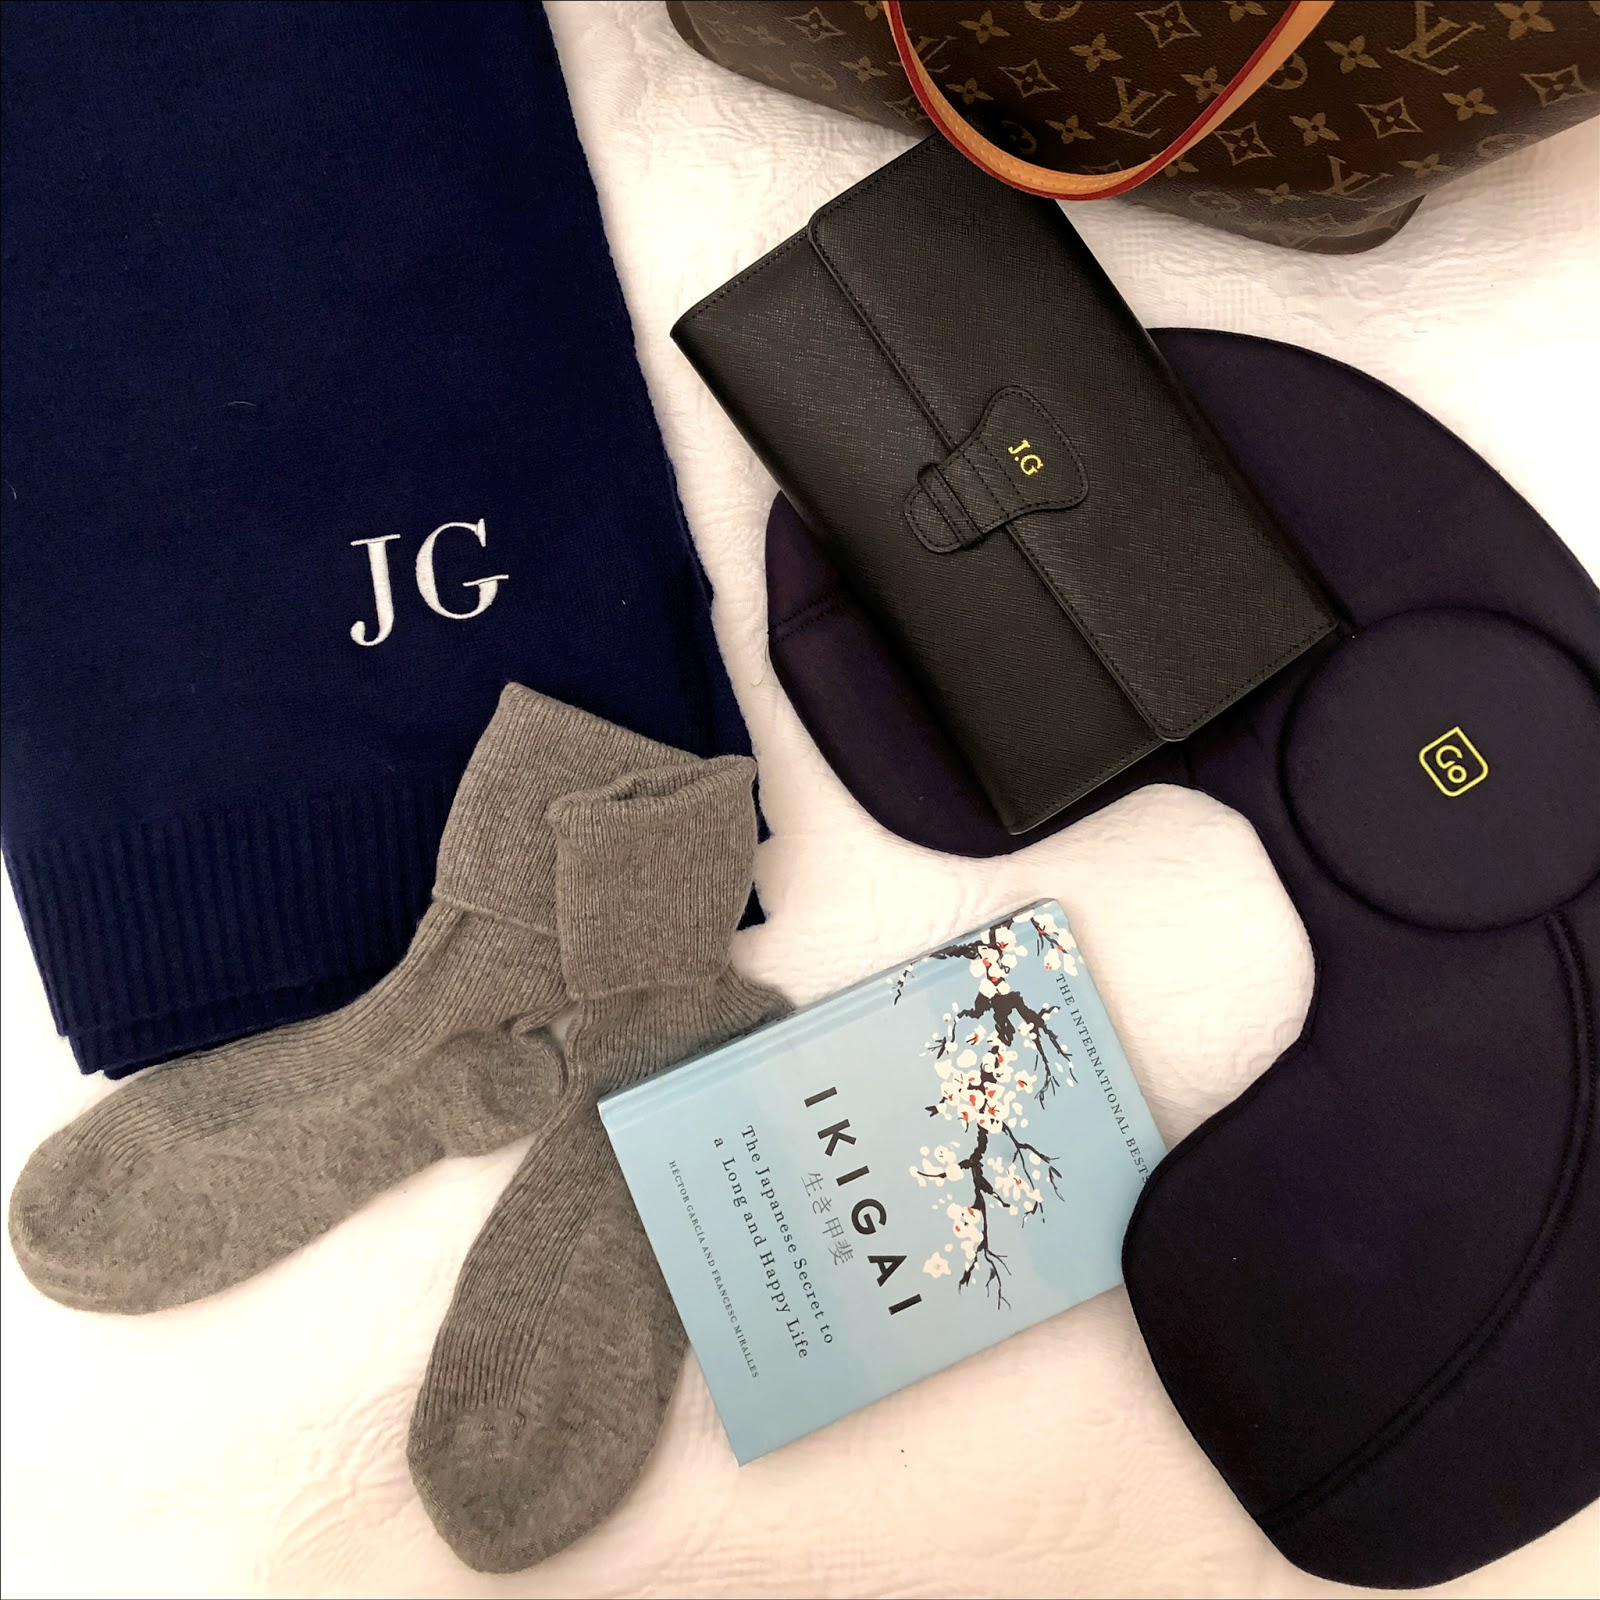 My Midlife Fashion, mimi and thomas cashmere large travel wrap, blacks cashmere ankle socks, louis vuitton never full, ikigai, go travel products travel pillow, lover of luxe travel document holder